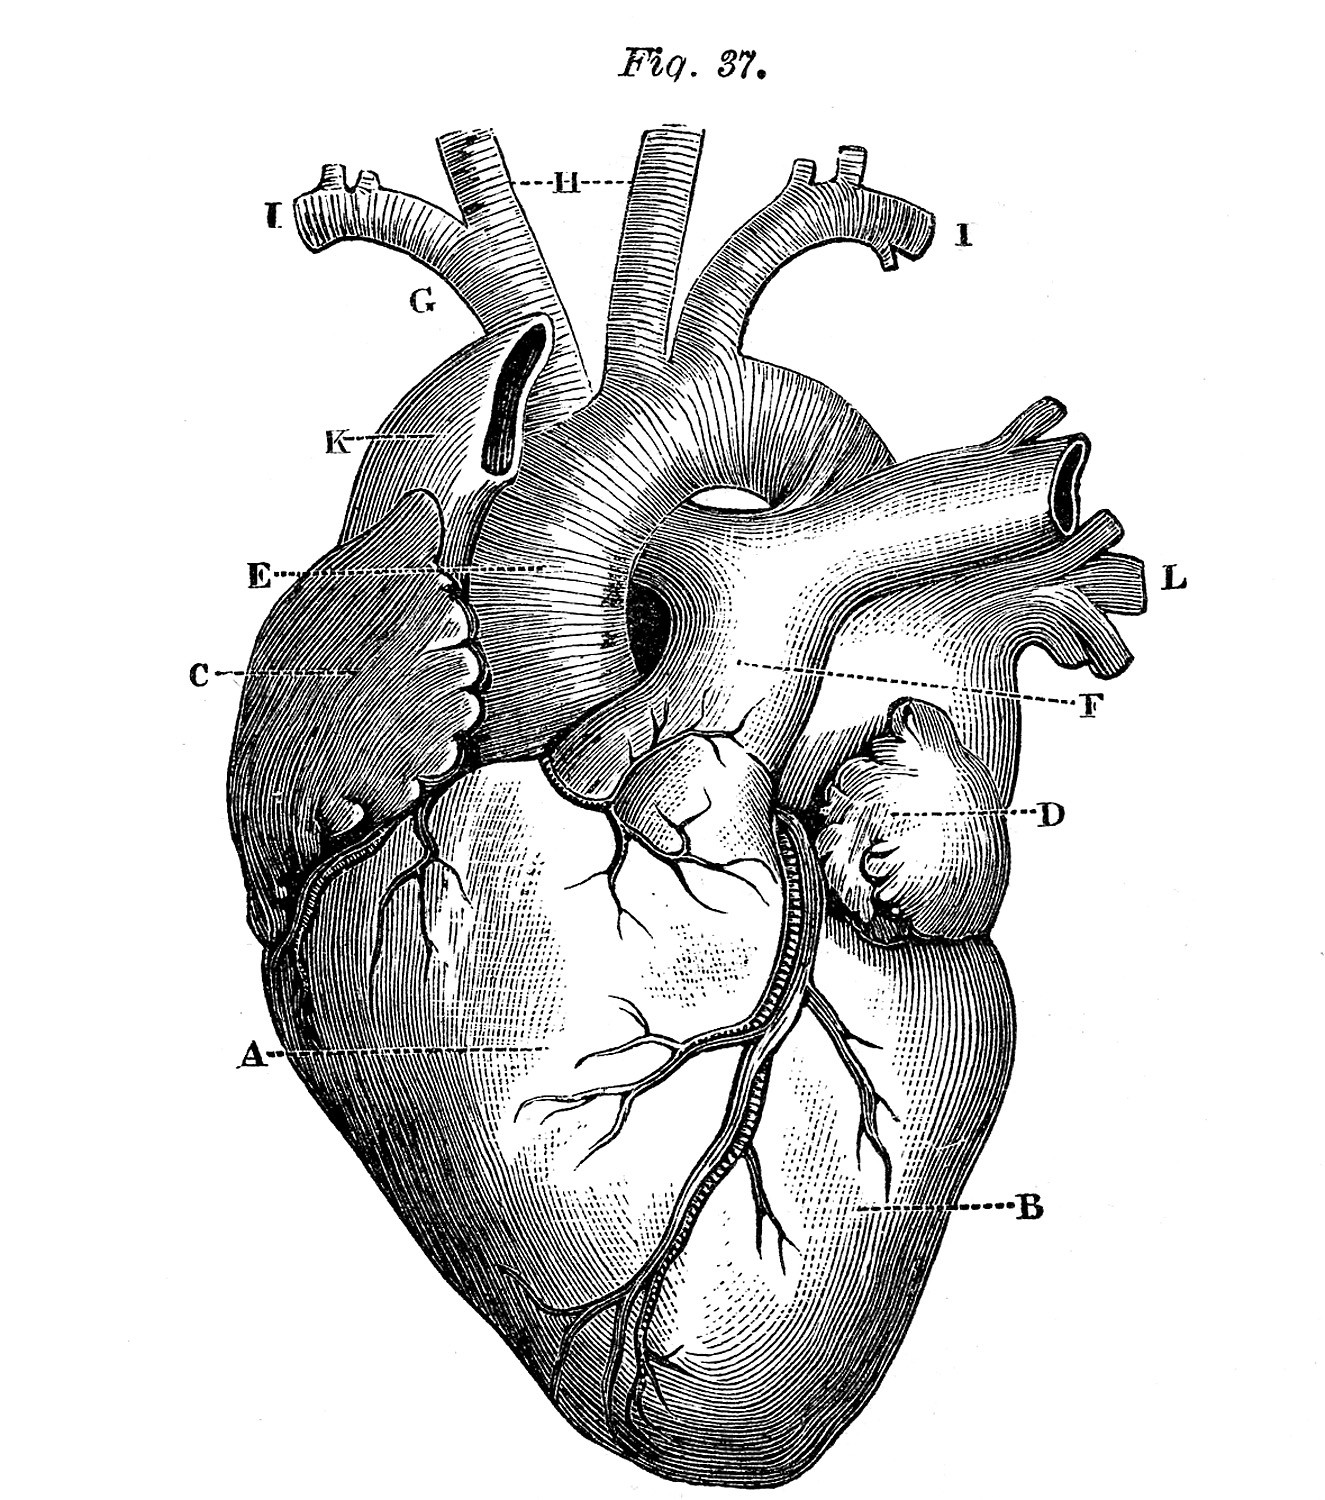 Printable Heart Diagram 6 Anatomical Heart the Graphics Fairy